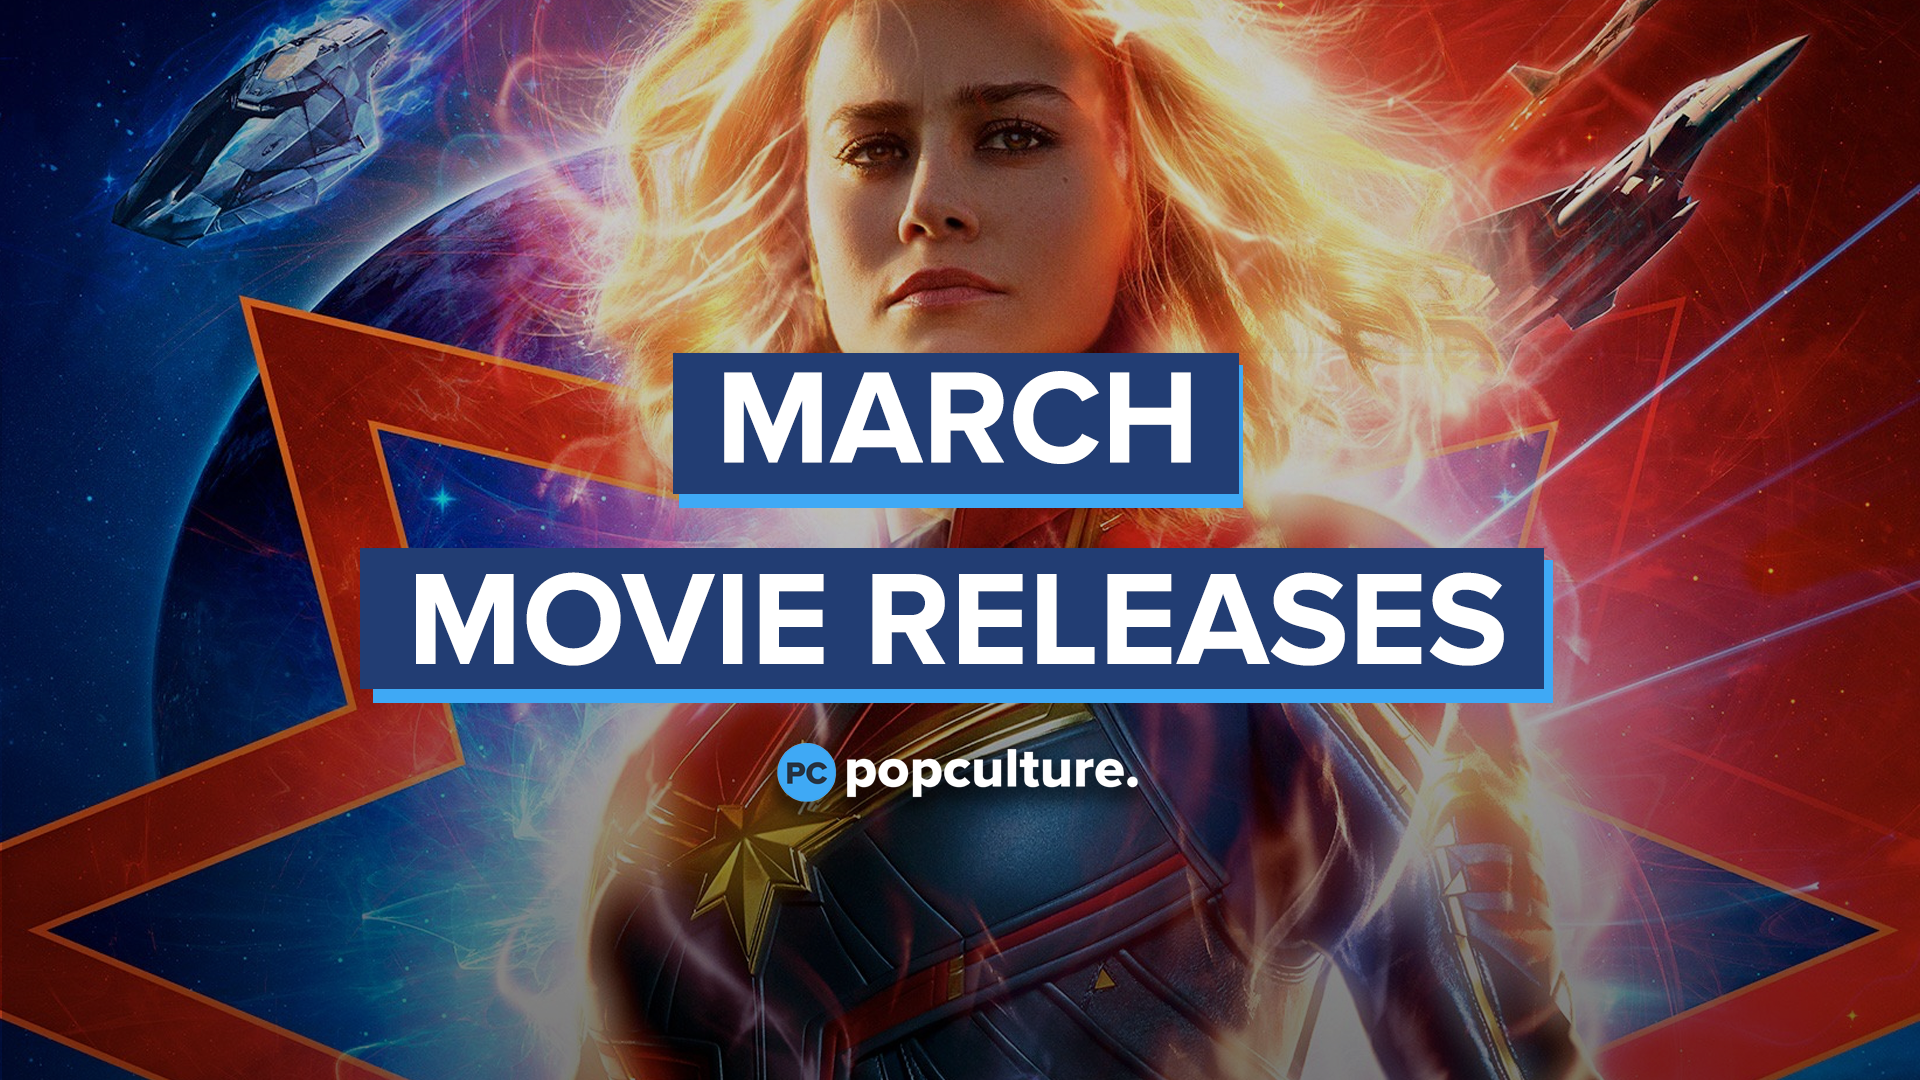 March 2019 Movie Releases screen capture